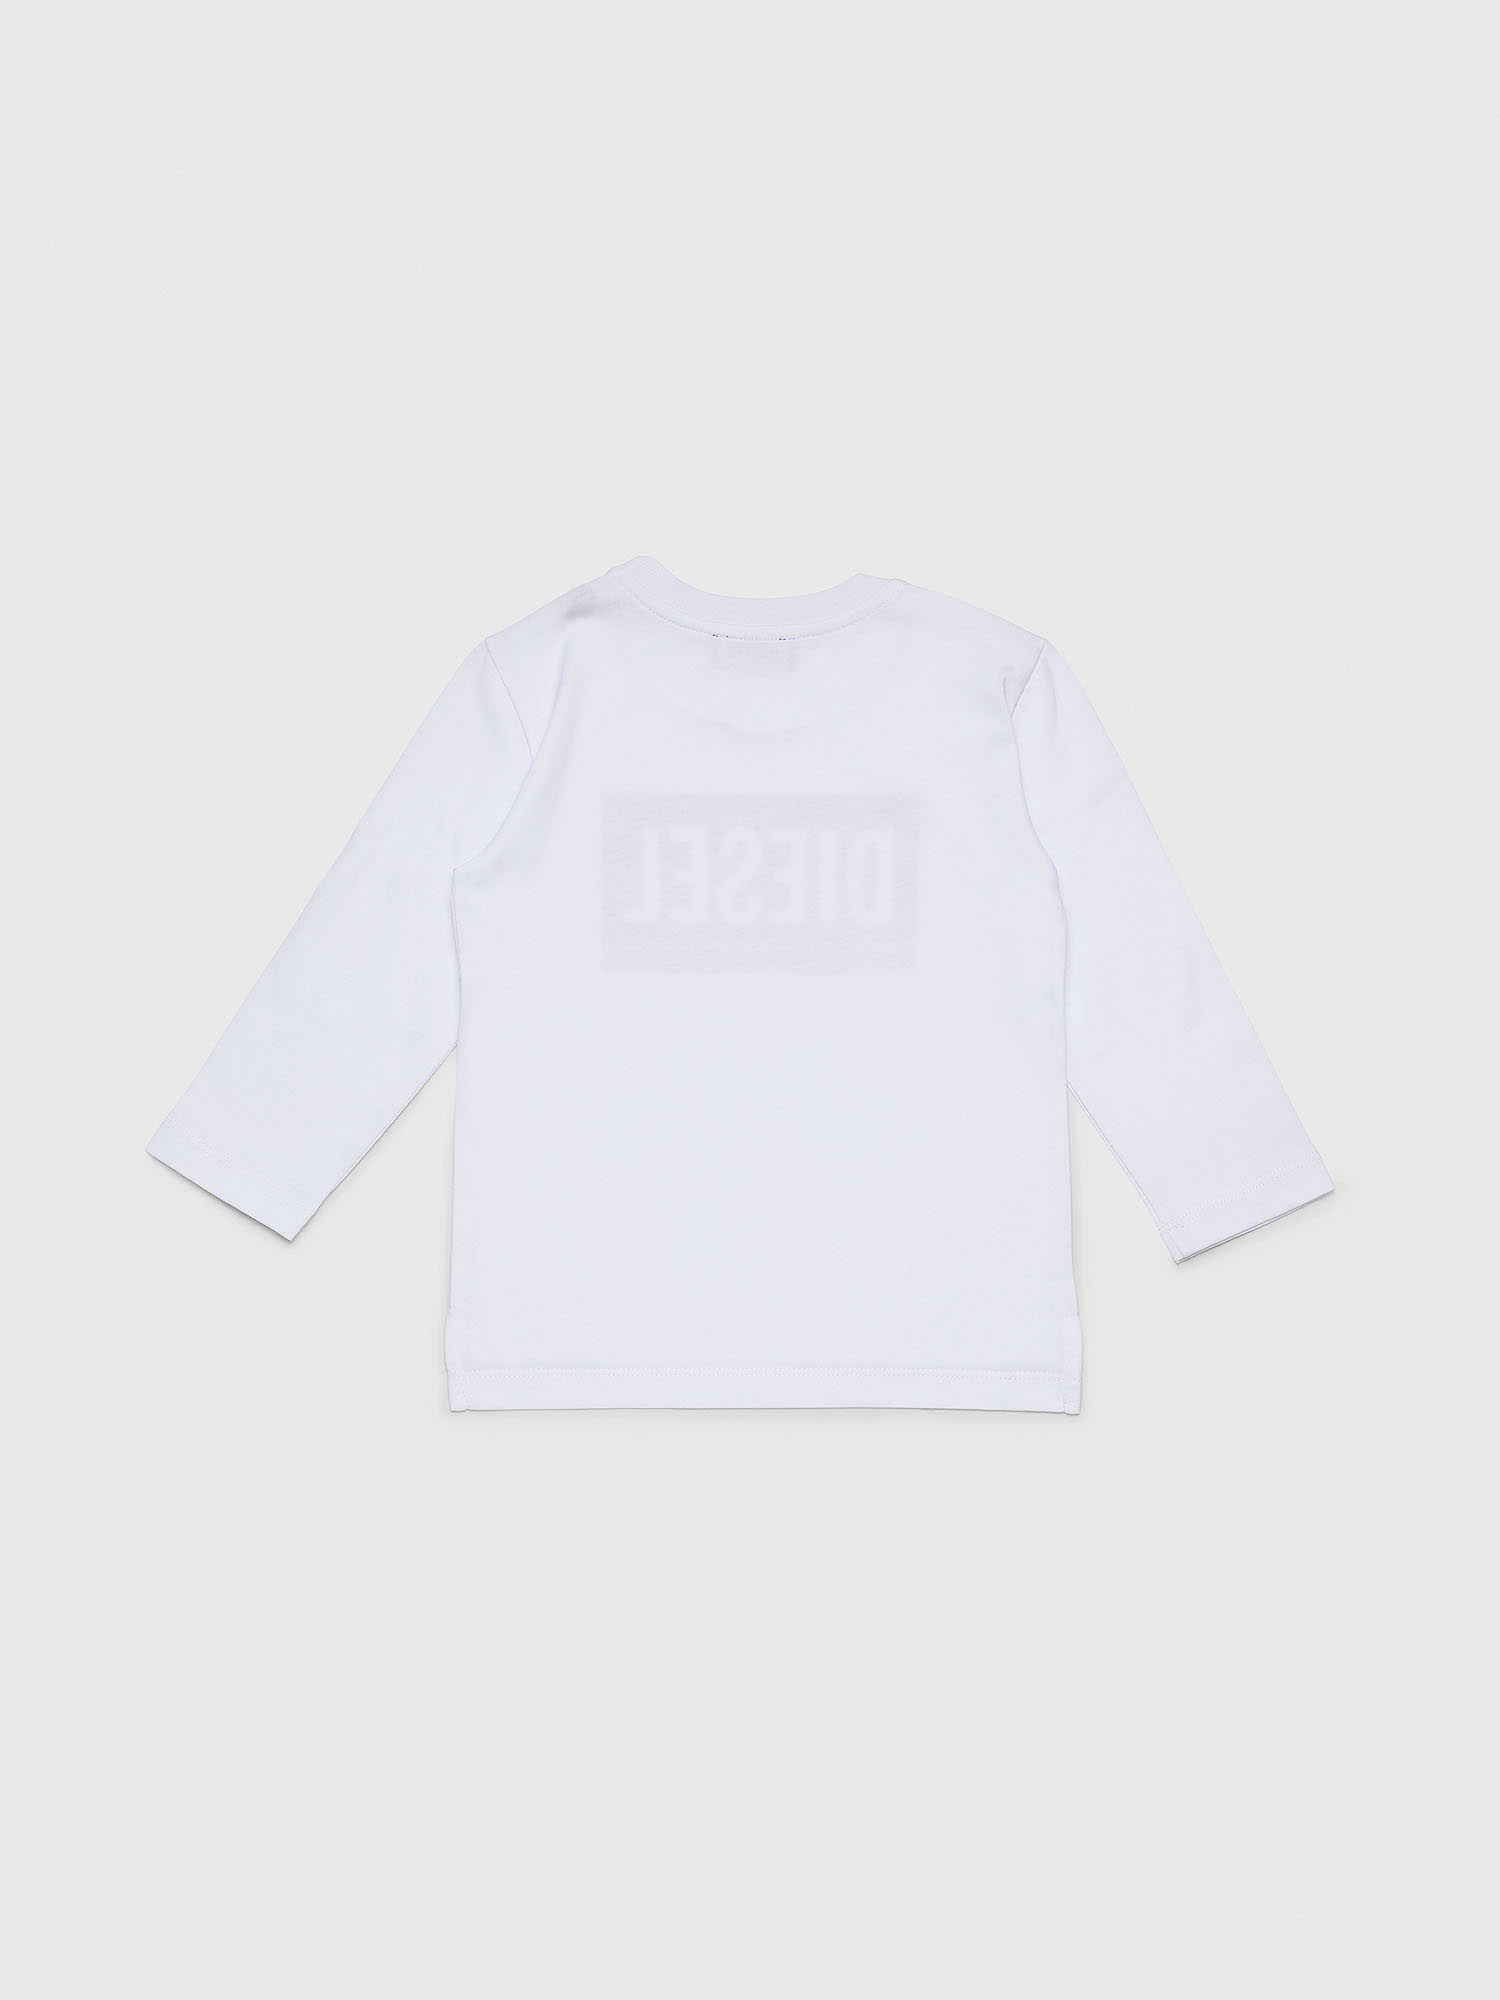 Diesel - TIRRIB-R,  - T-shirts and Tops - Image 2